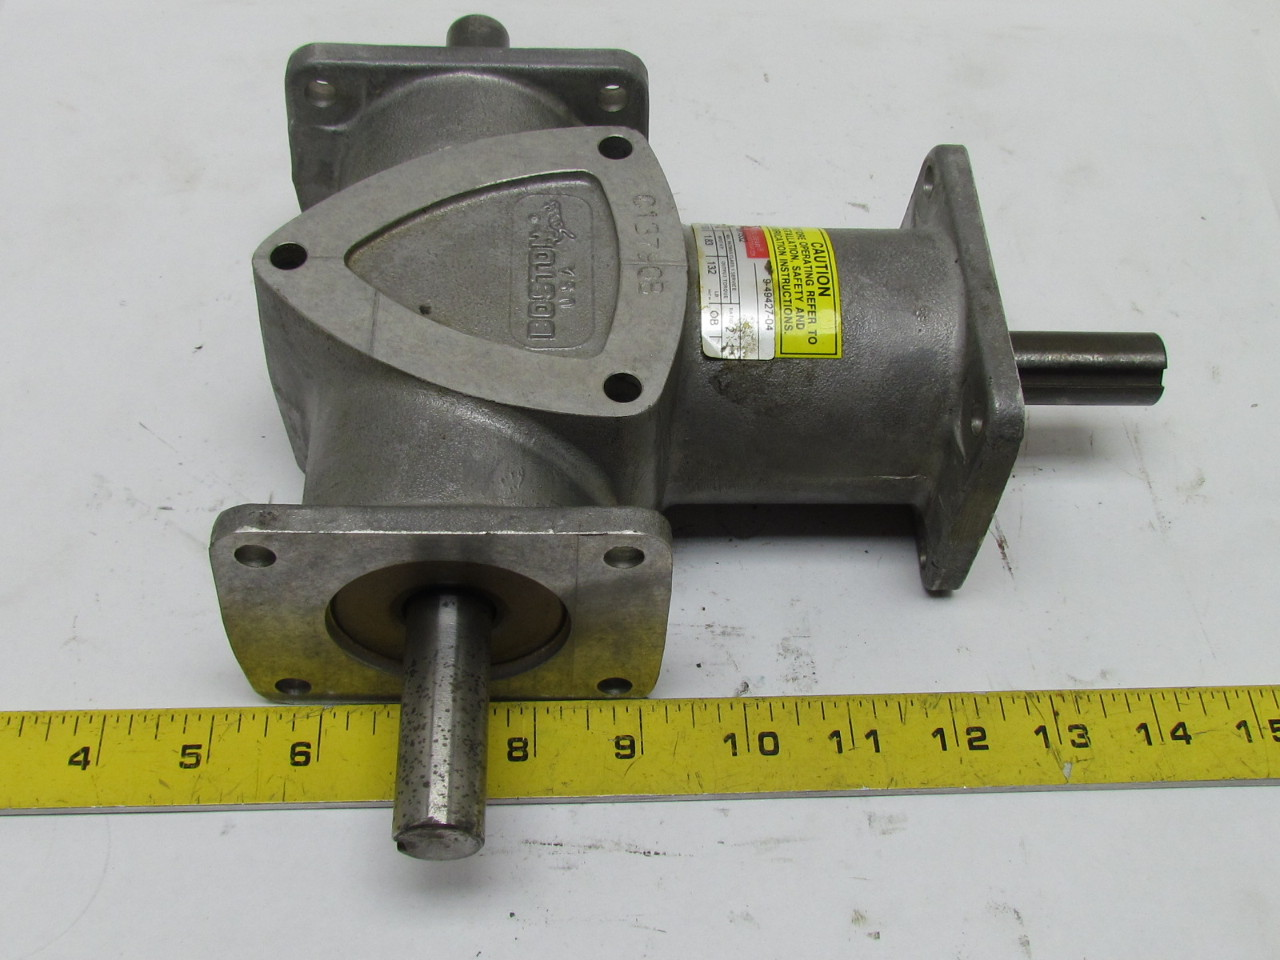 Right Angle Transmission : Boston right angle spiral bevel gear drive gearbox